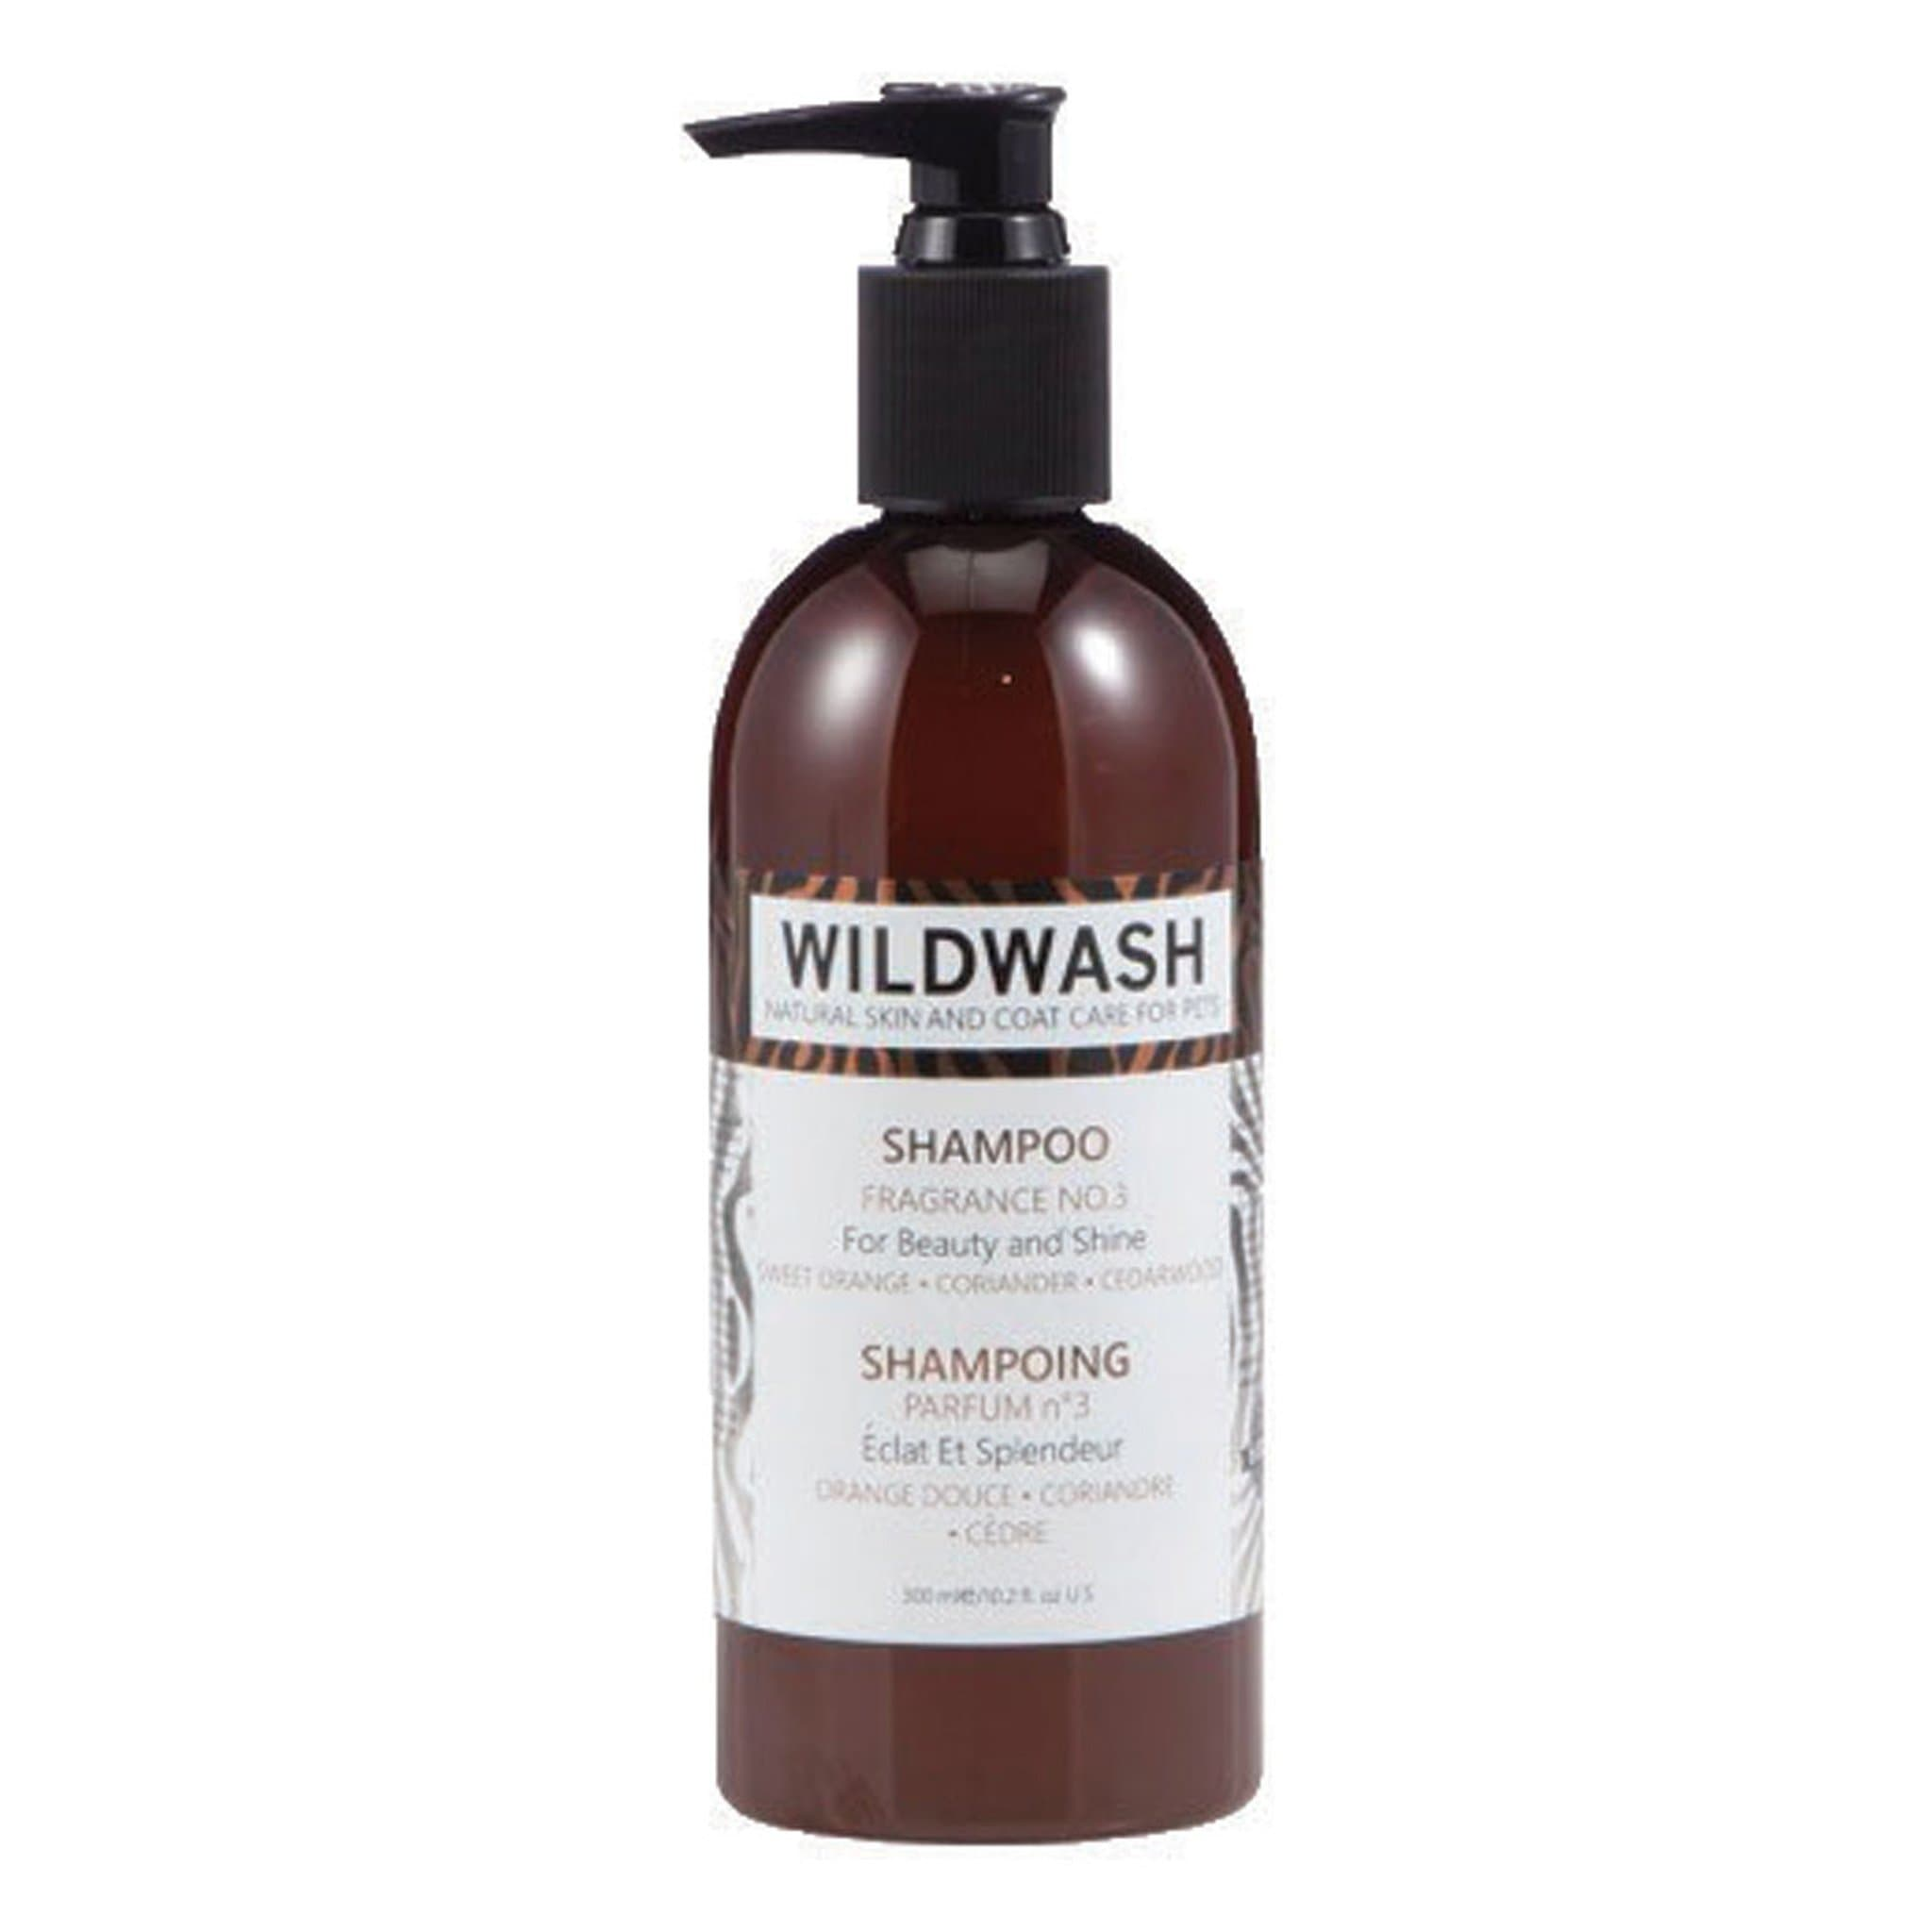 Pet Revolution WildWash Dog Shampoo For Beauty And Shine Fragrance No.3 11548 300ml